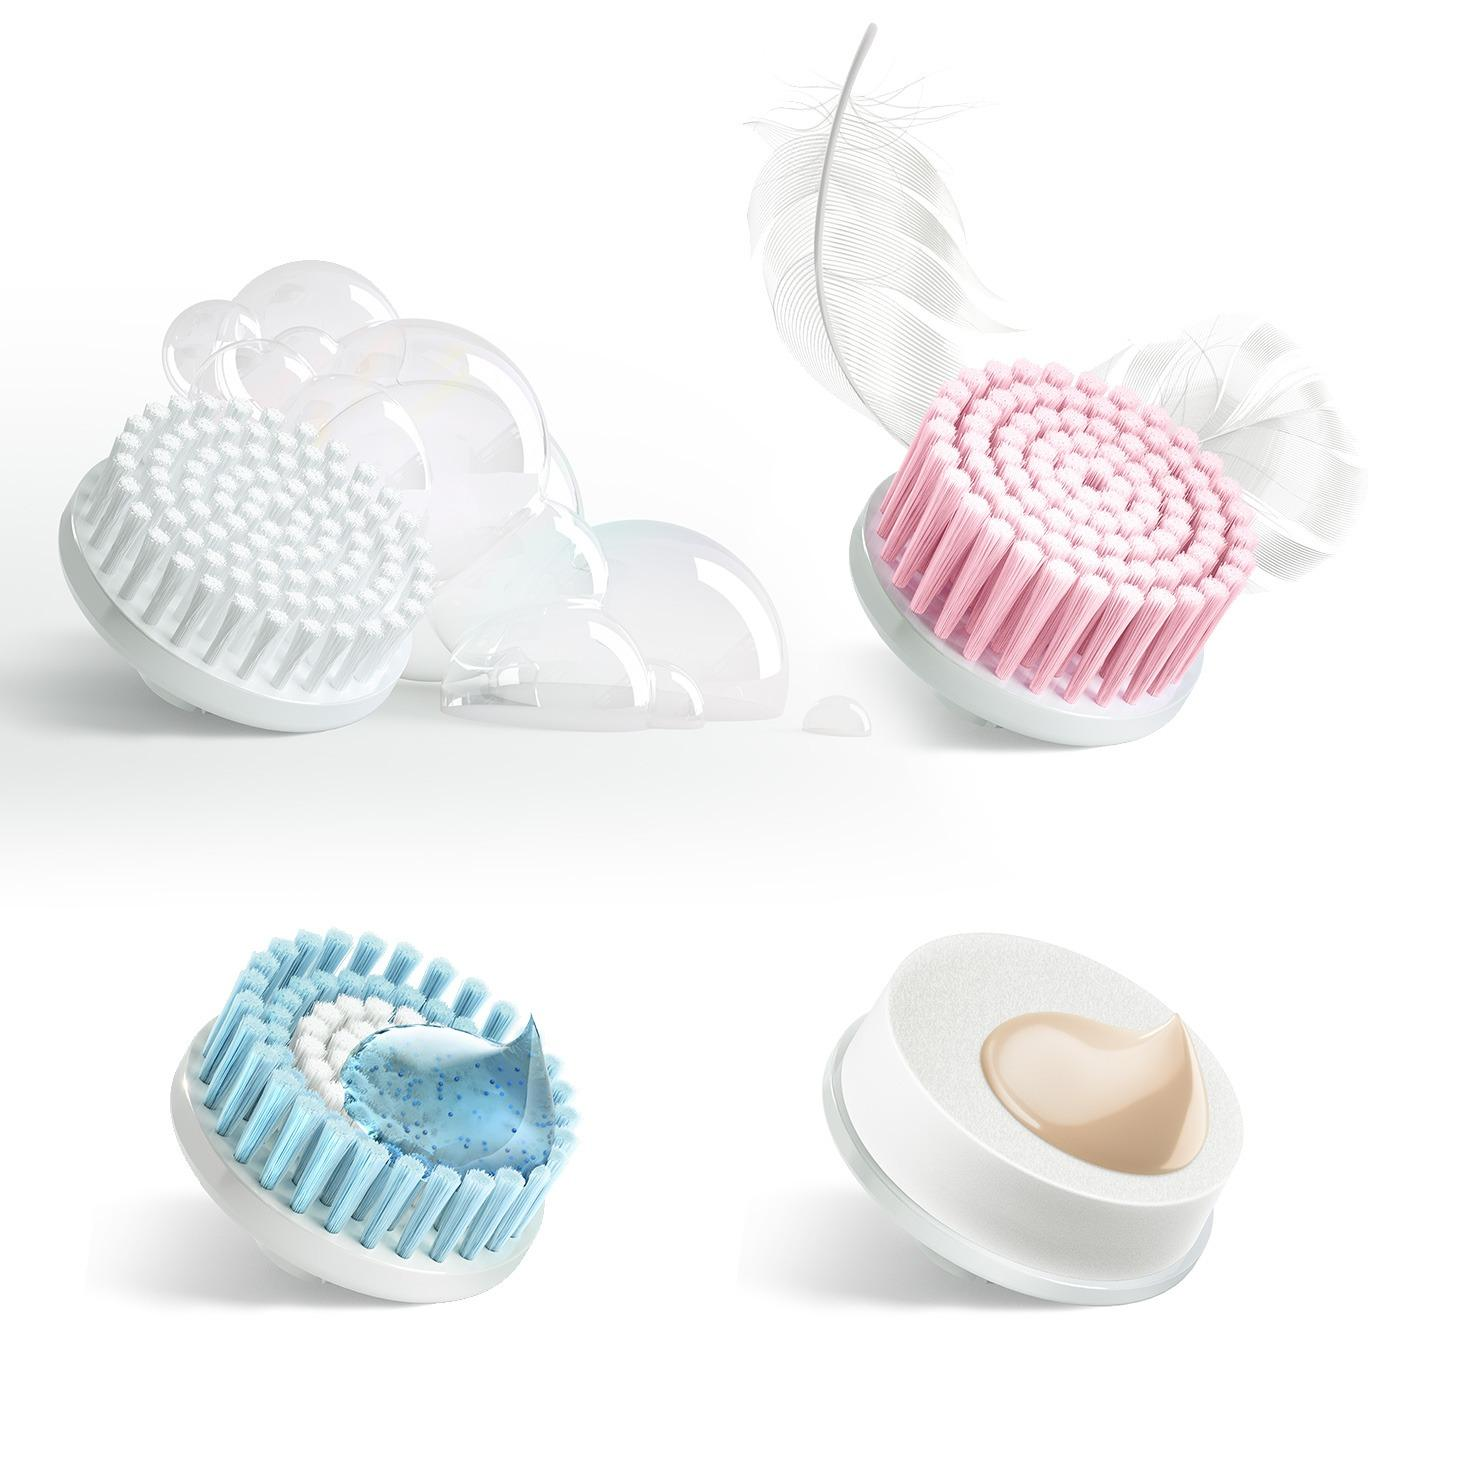 Braun facial cleansing brush refill duo pack 80-m